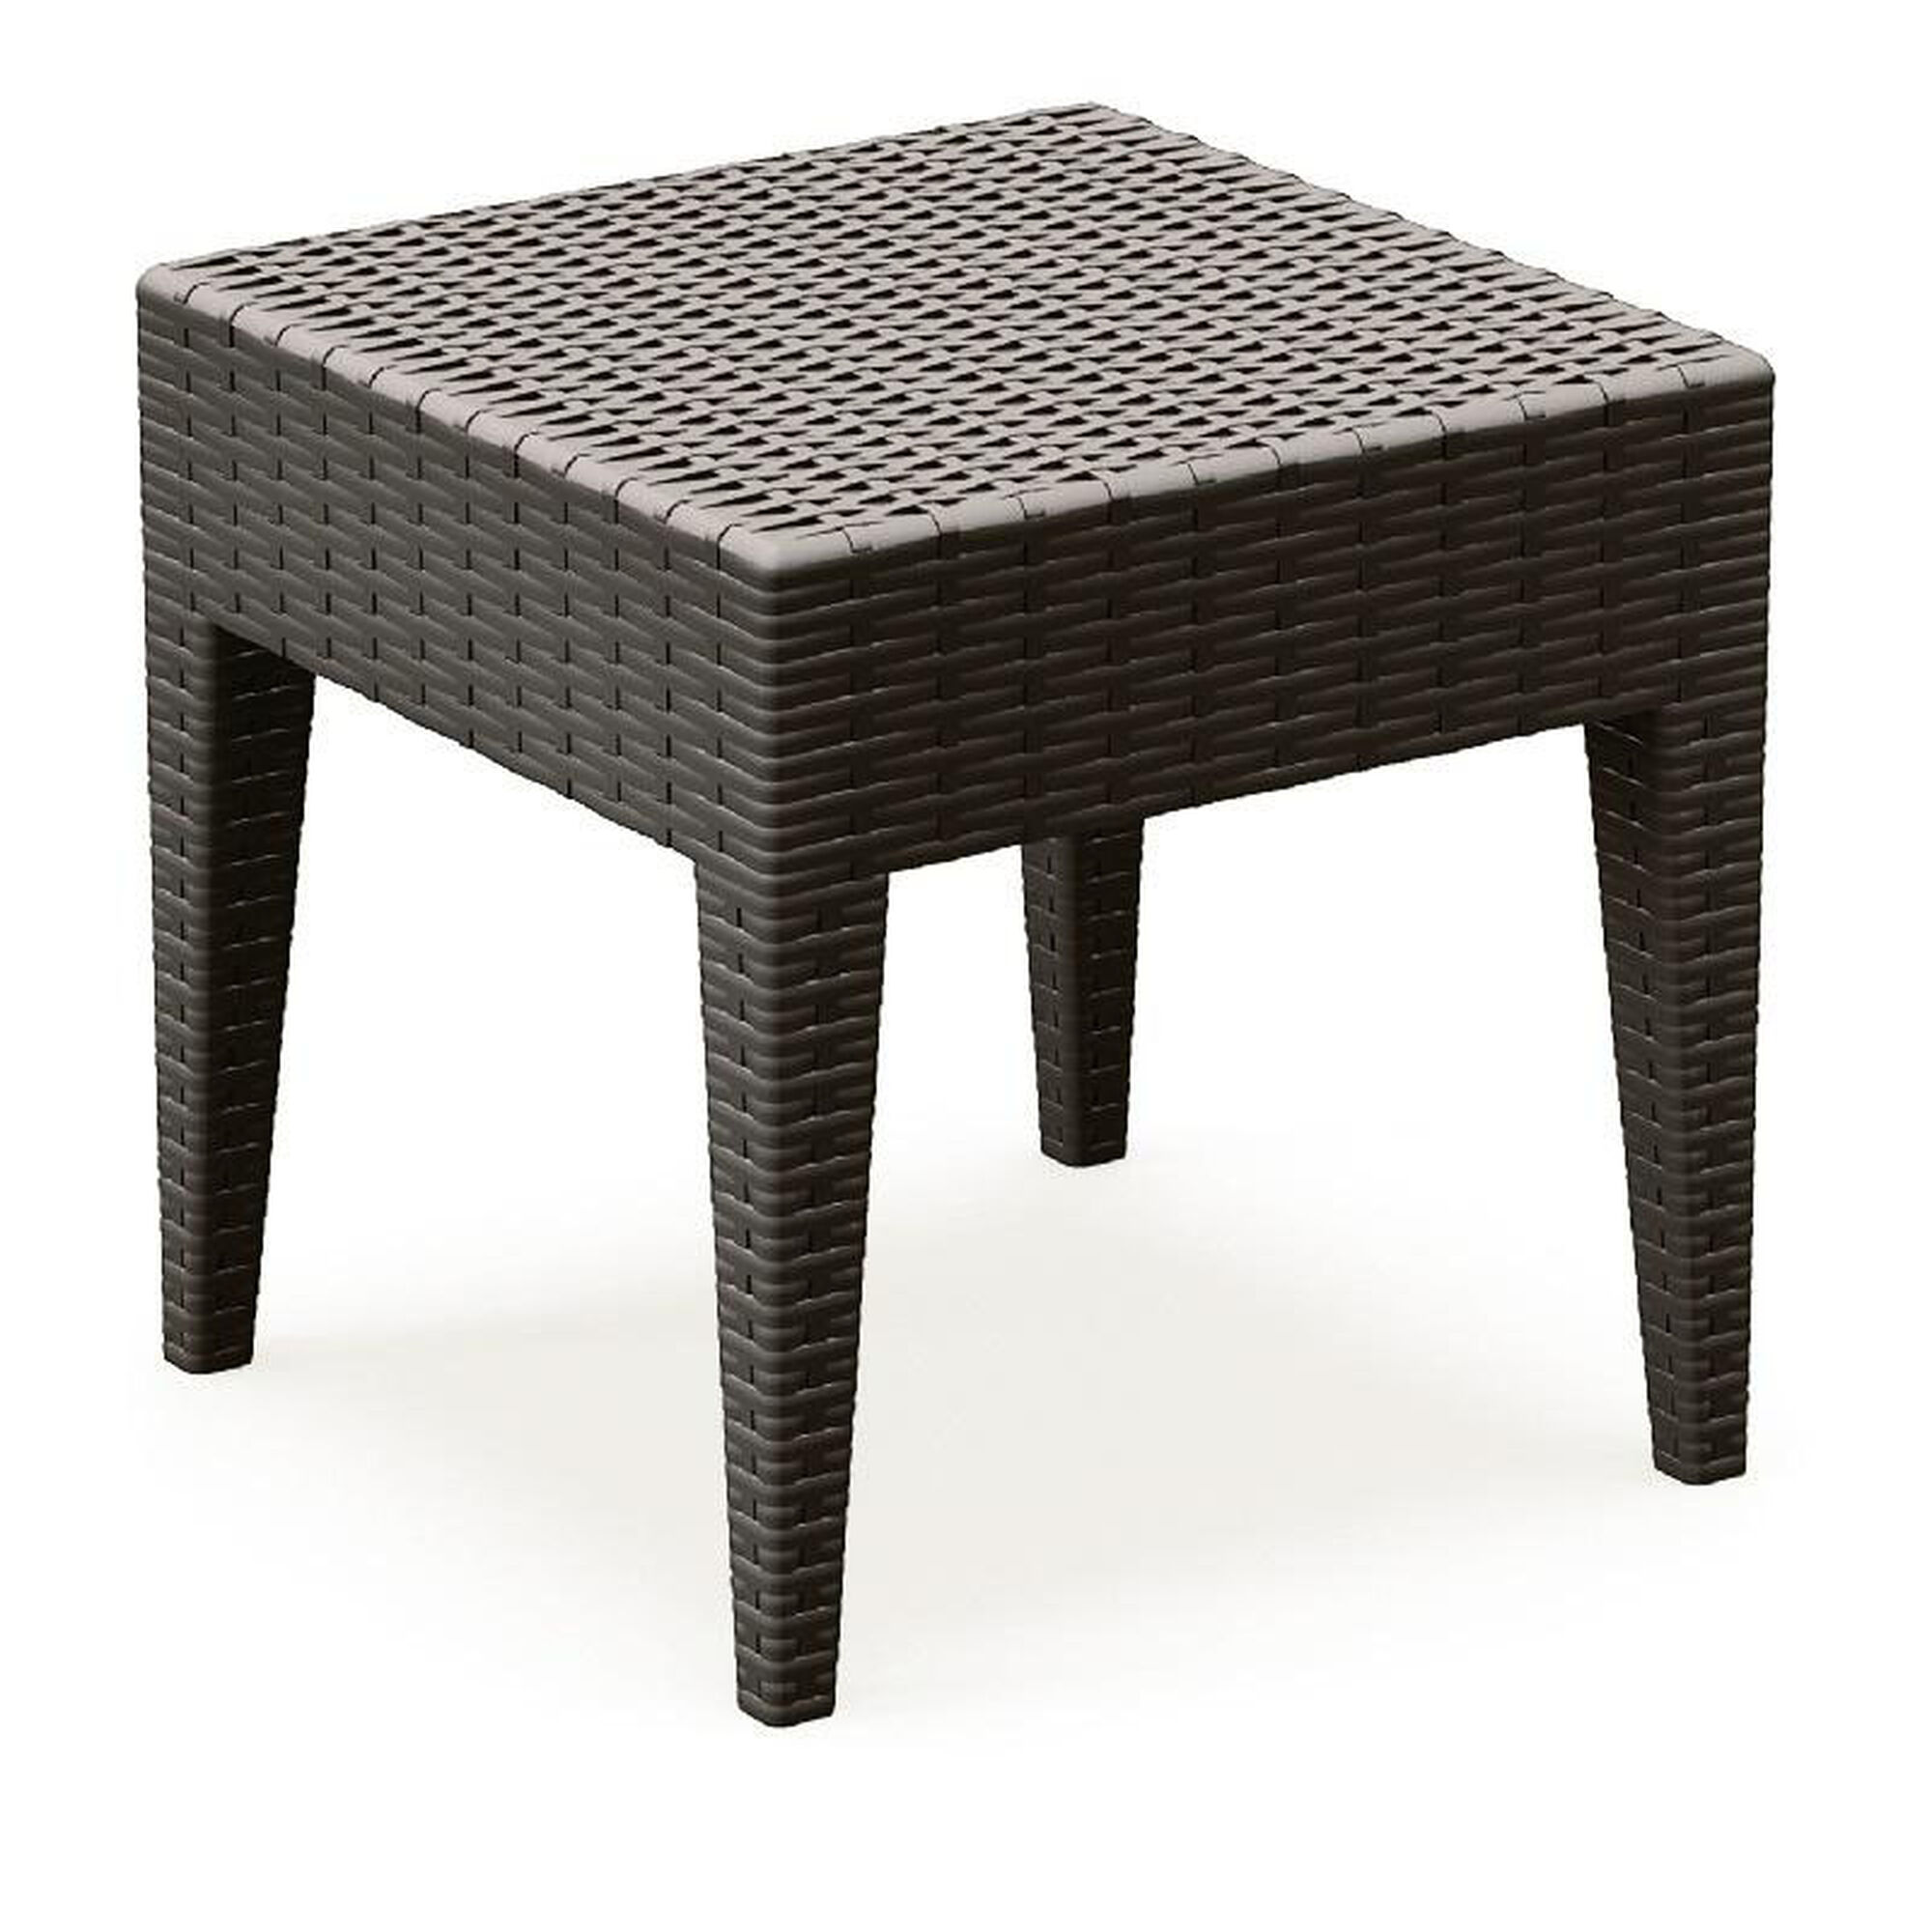 Images our miami outdoor wickerlook resin square side table